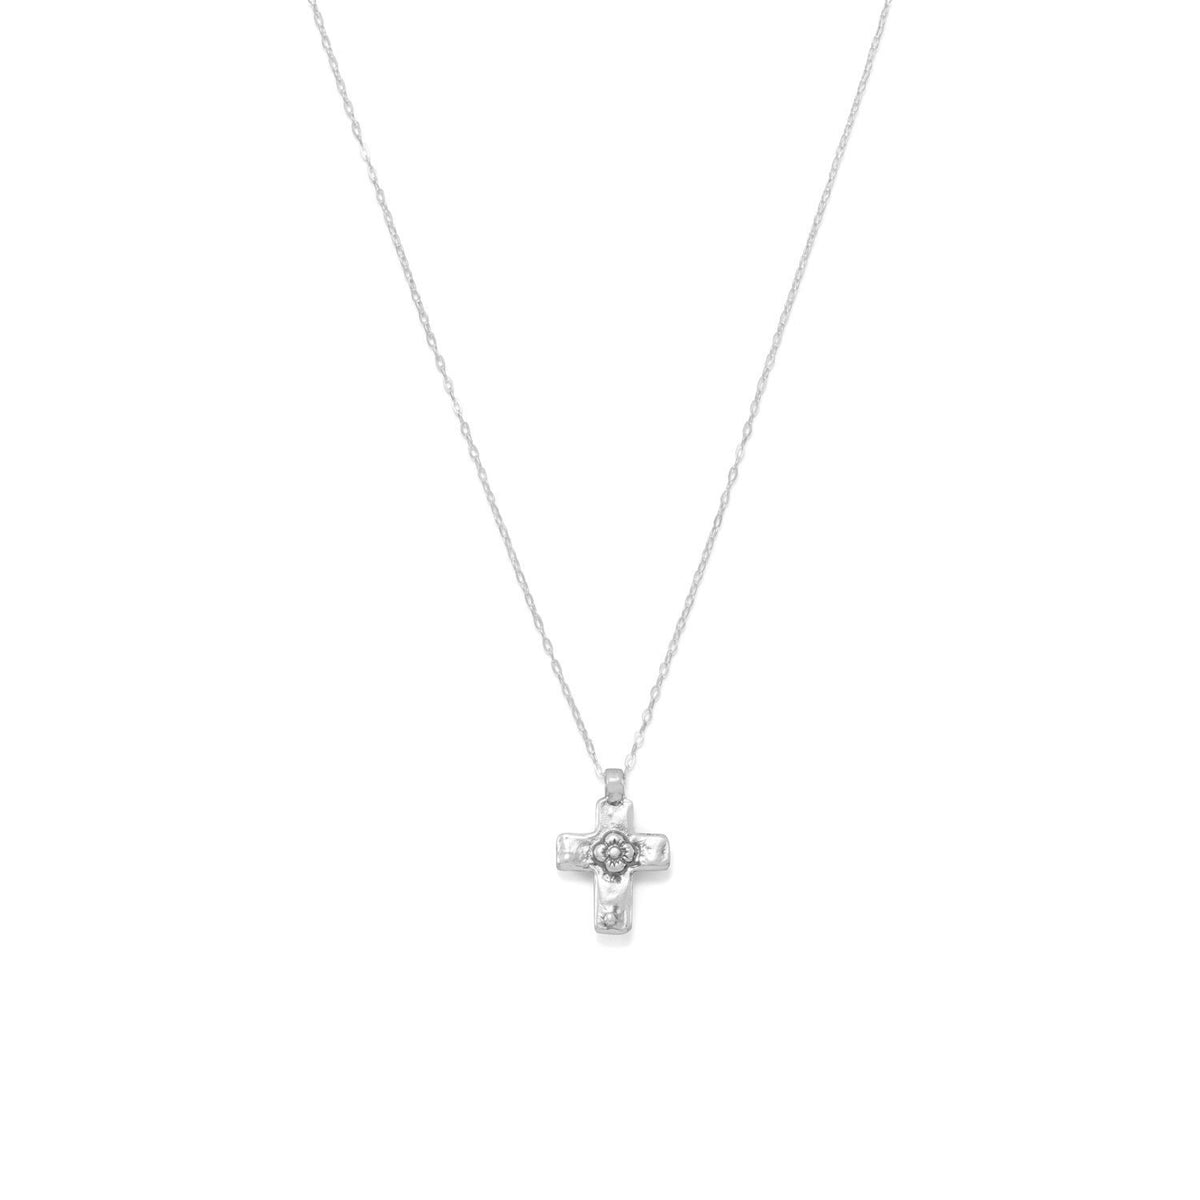 Reversible Cross Charm with Cultured Freshwater Pearl Necklace